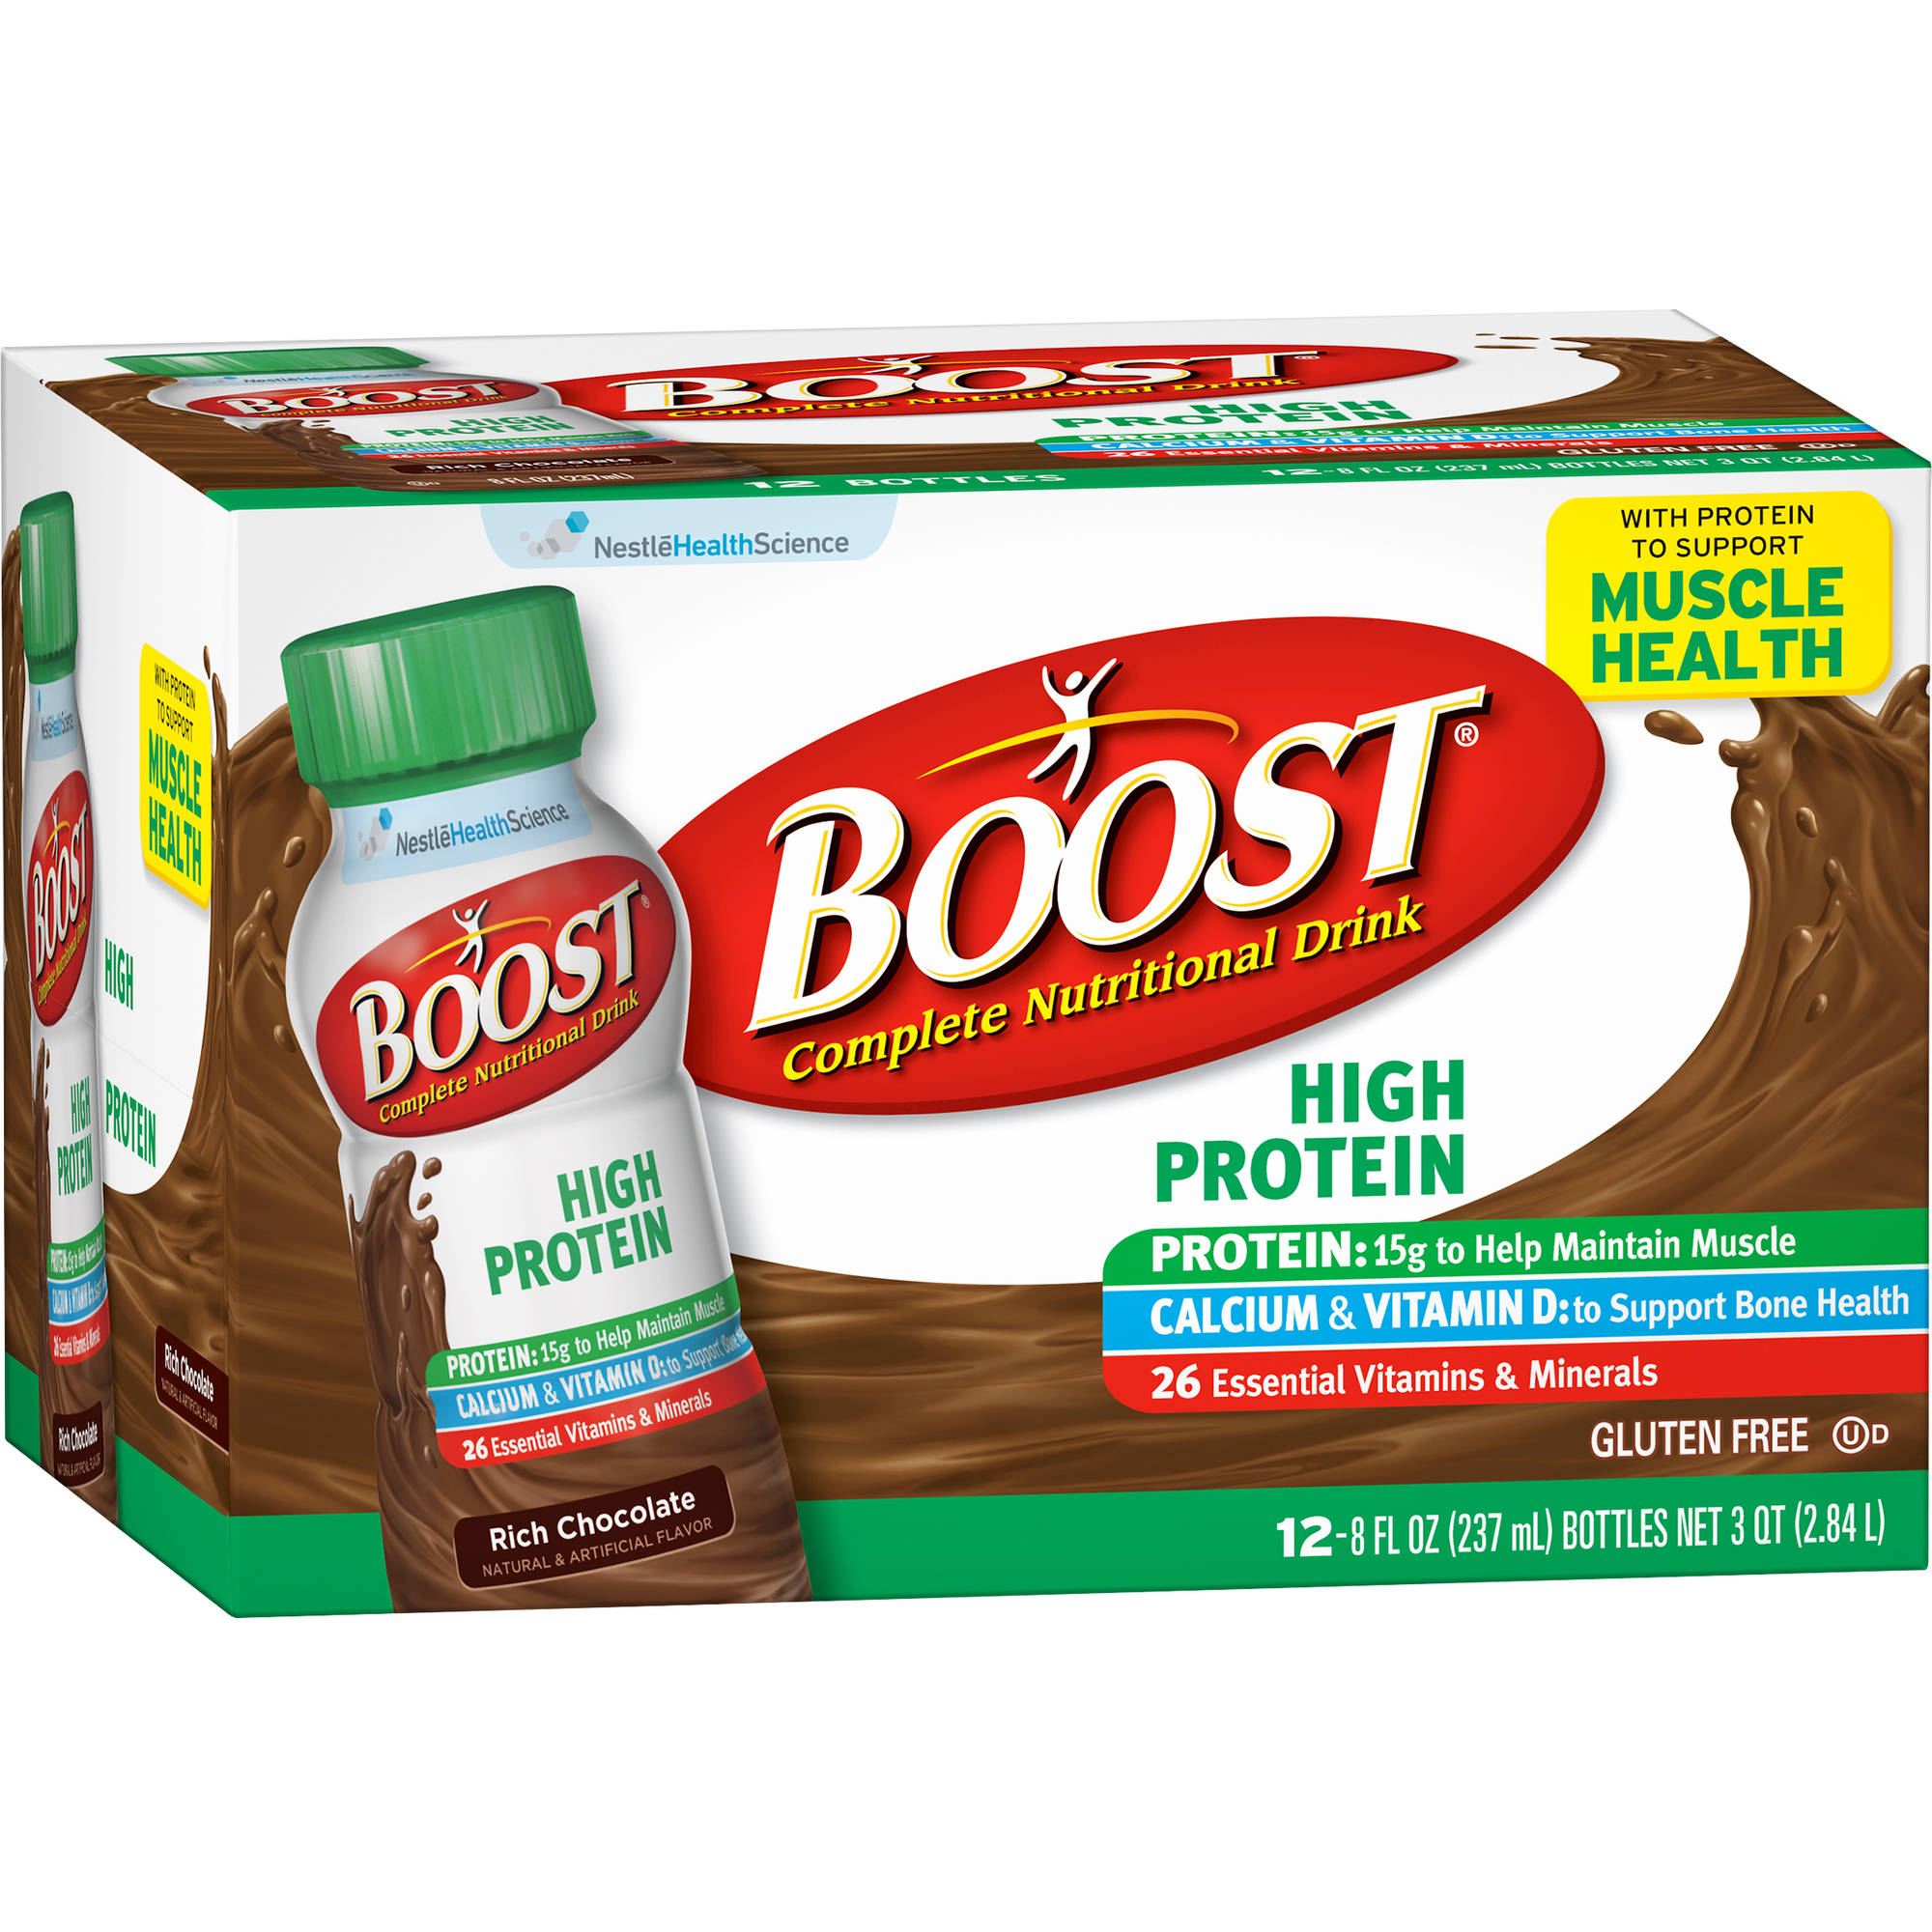 Boost High Protein Rich Chocolate Complete Nutritional Drinks, 8 fl oz, 12 count